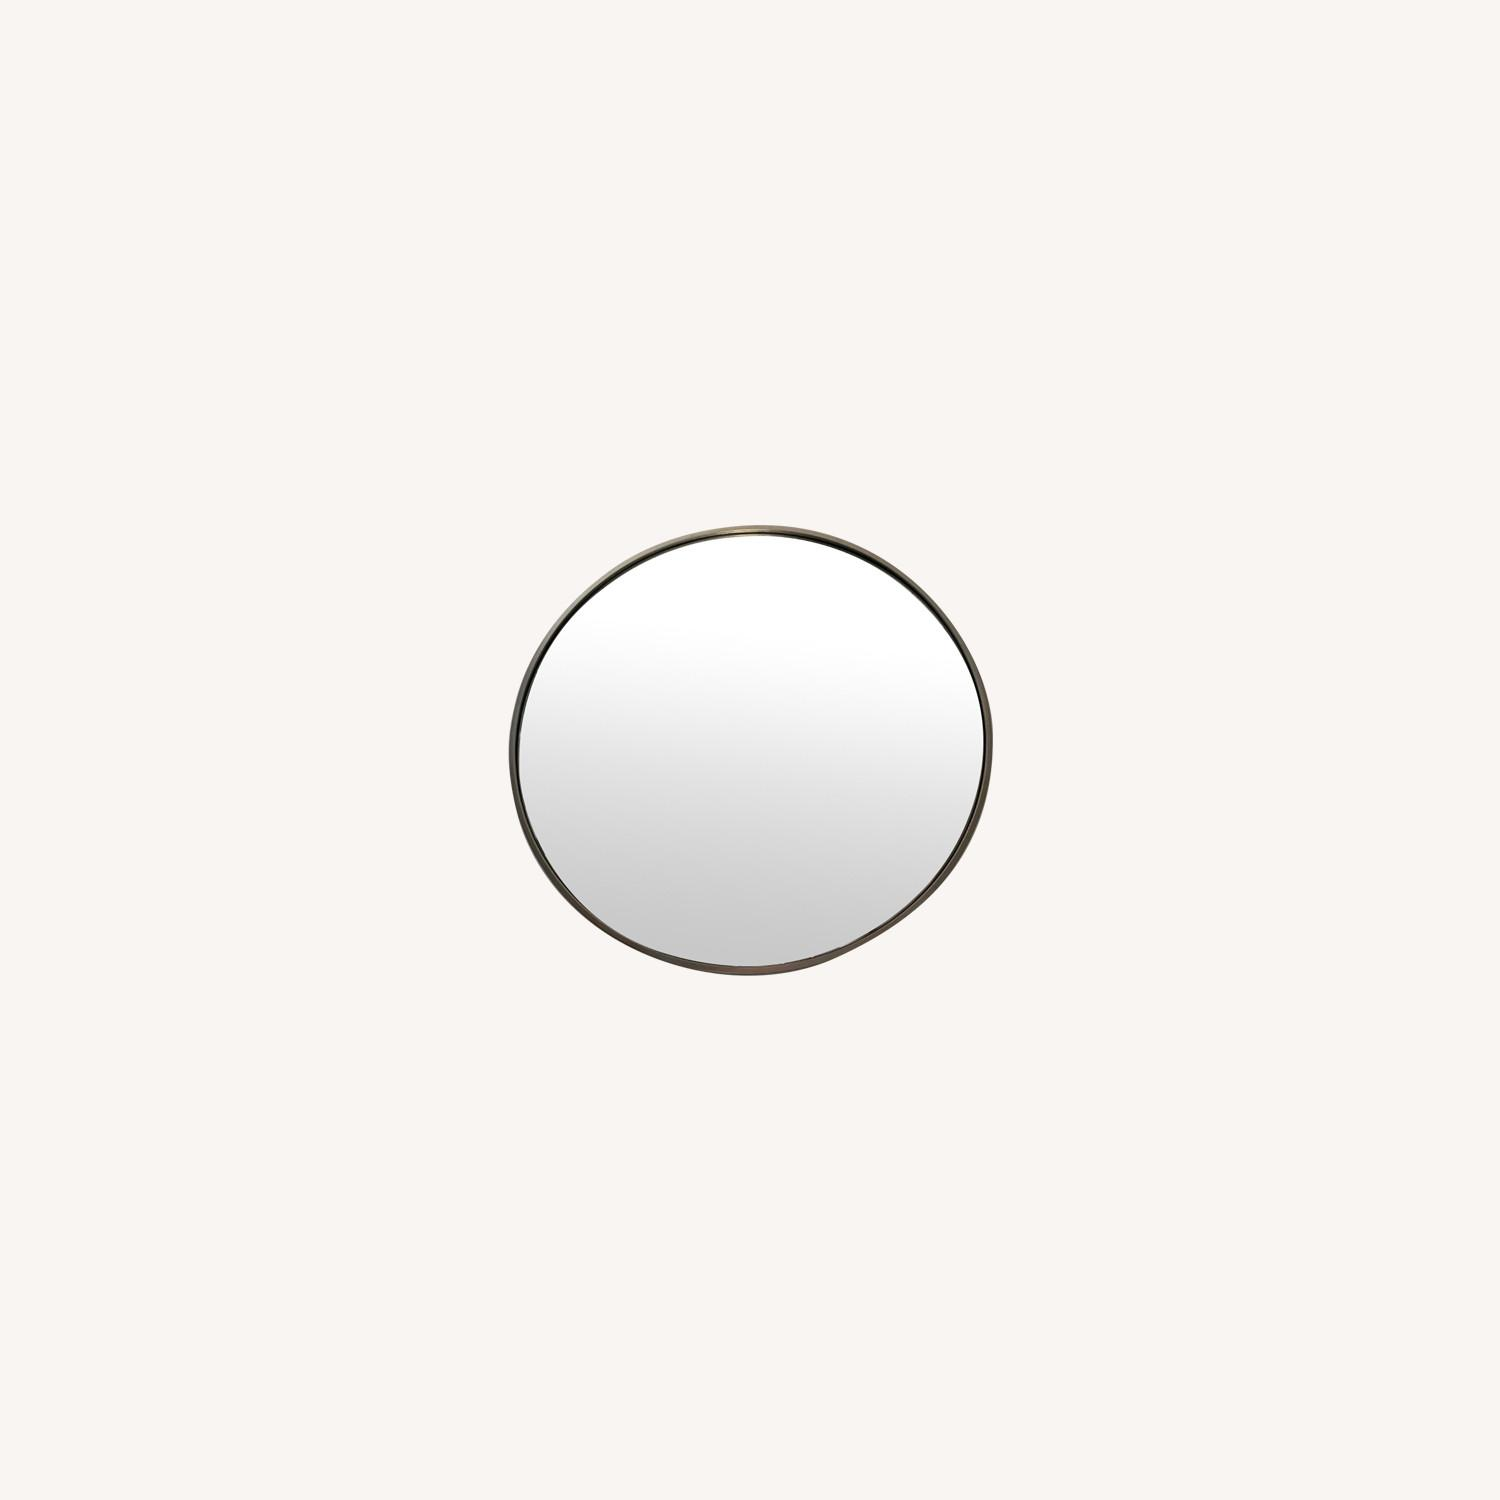 CB2 Round Mirror with Brushes Stainless Steel Rim - image-0